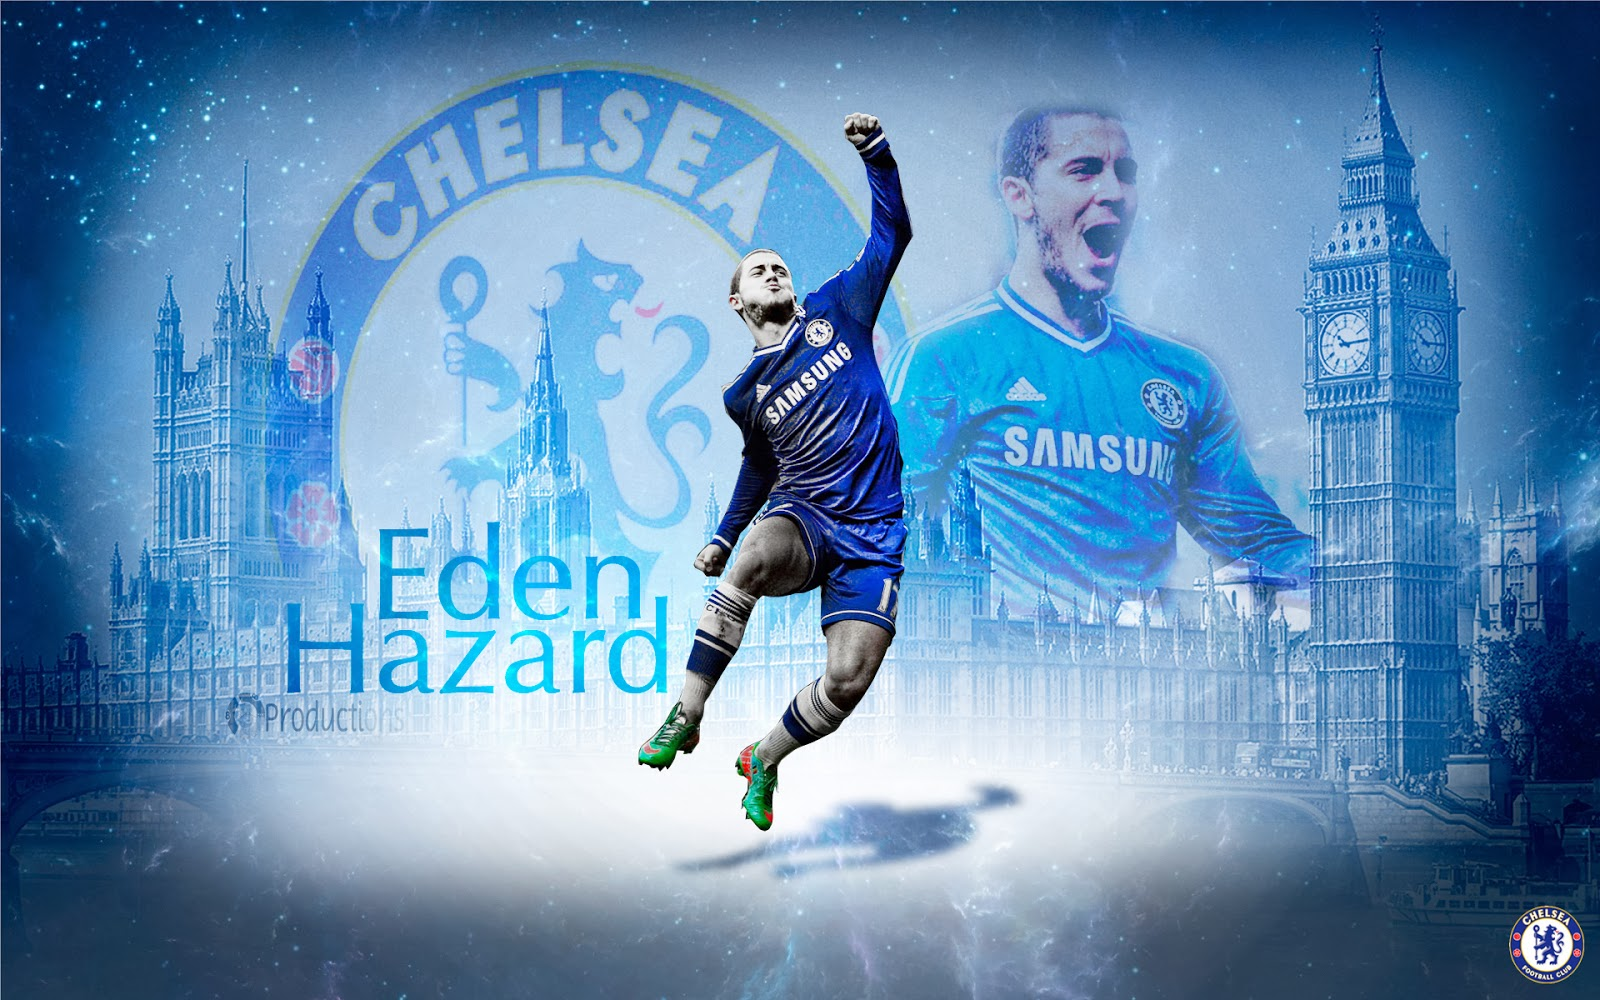 Best Eden hazard Wallpaper HD